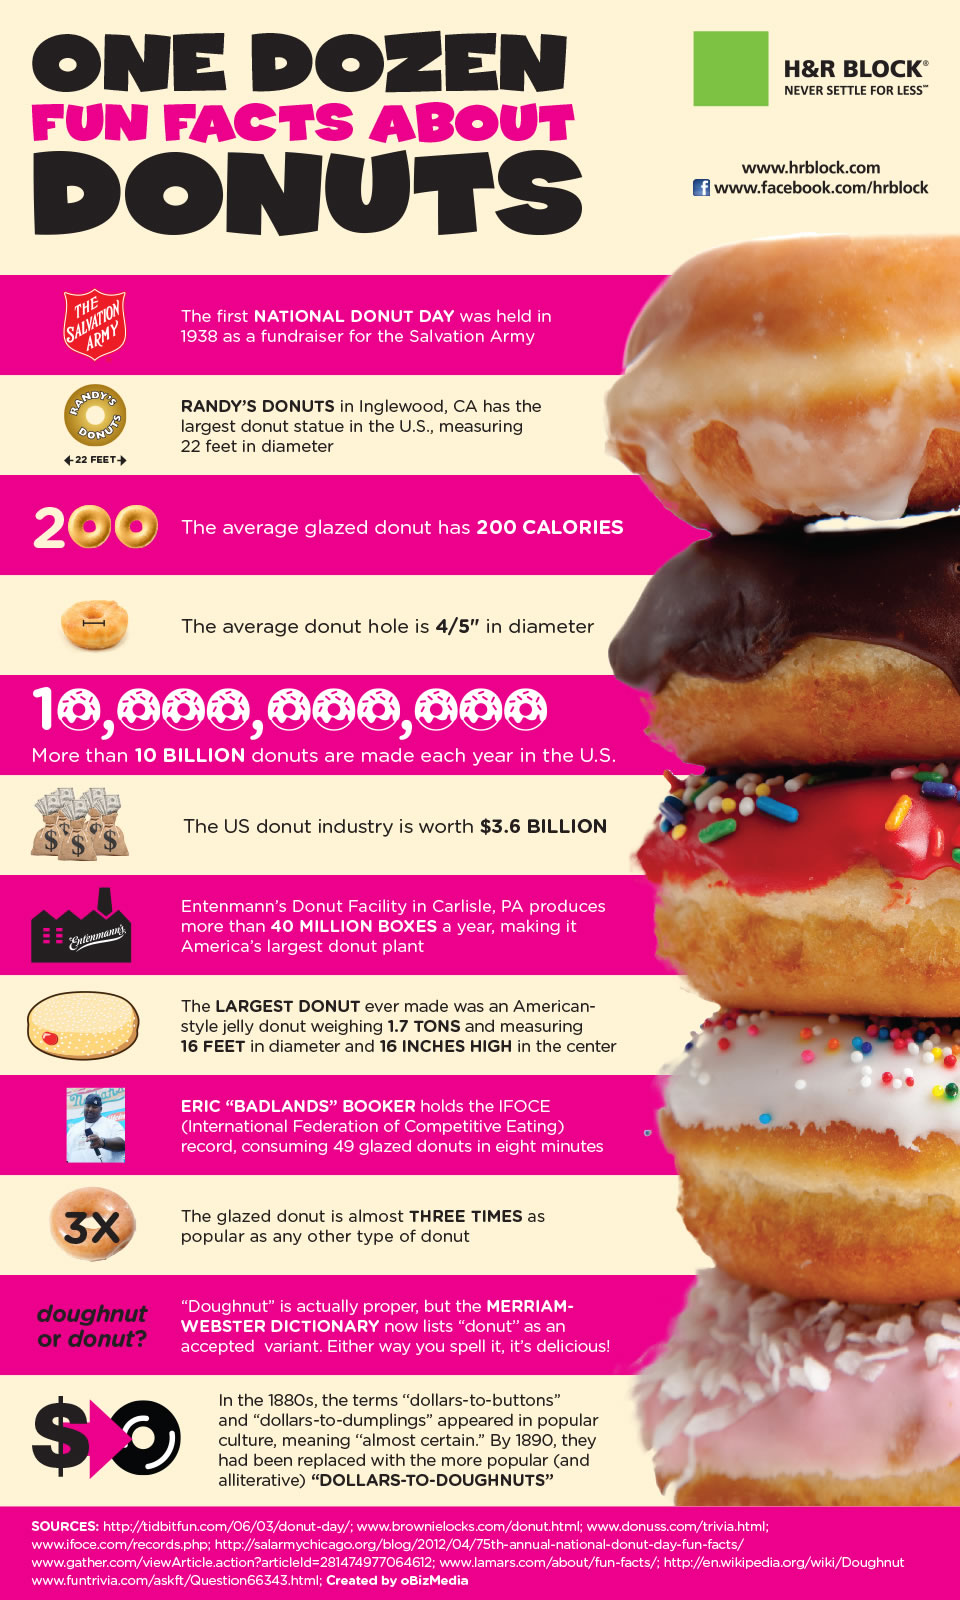 Fun facts about donuts